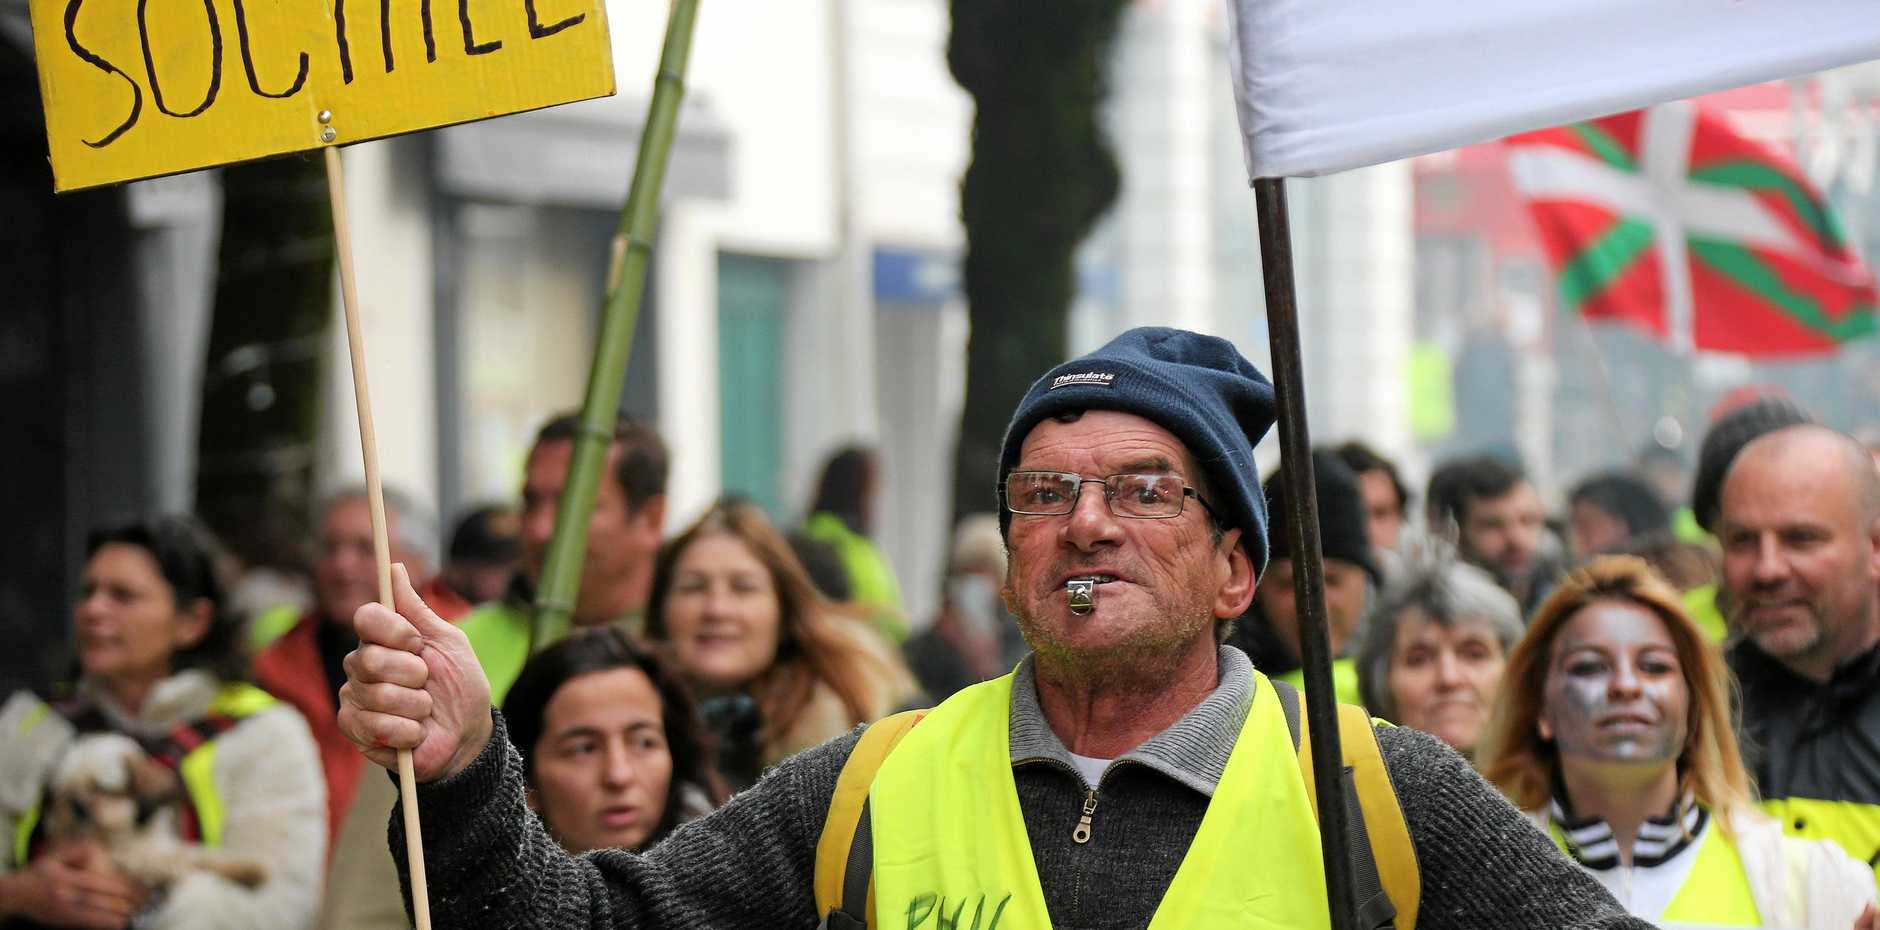 FIRED UP: A yellow vest protester demonstrates in Saint Jean De Luz, France, on Saturday. Yellow vest protesters are planning rallies in several French cities despite a national debate launched this week by President Emmanuel Macron aimed at assuaging their anger.